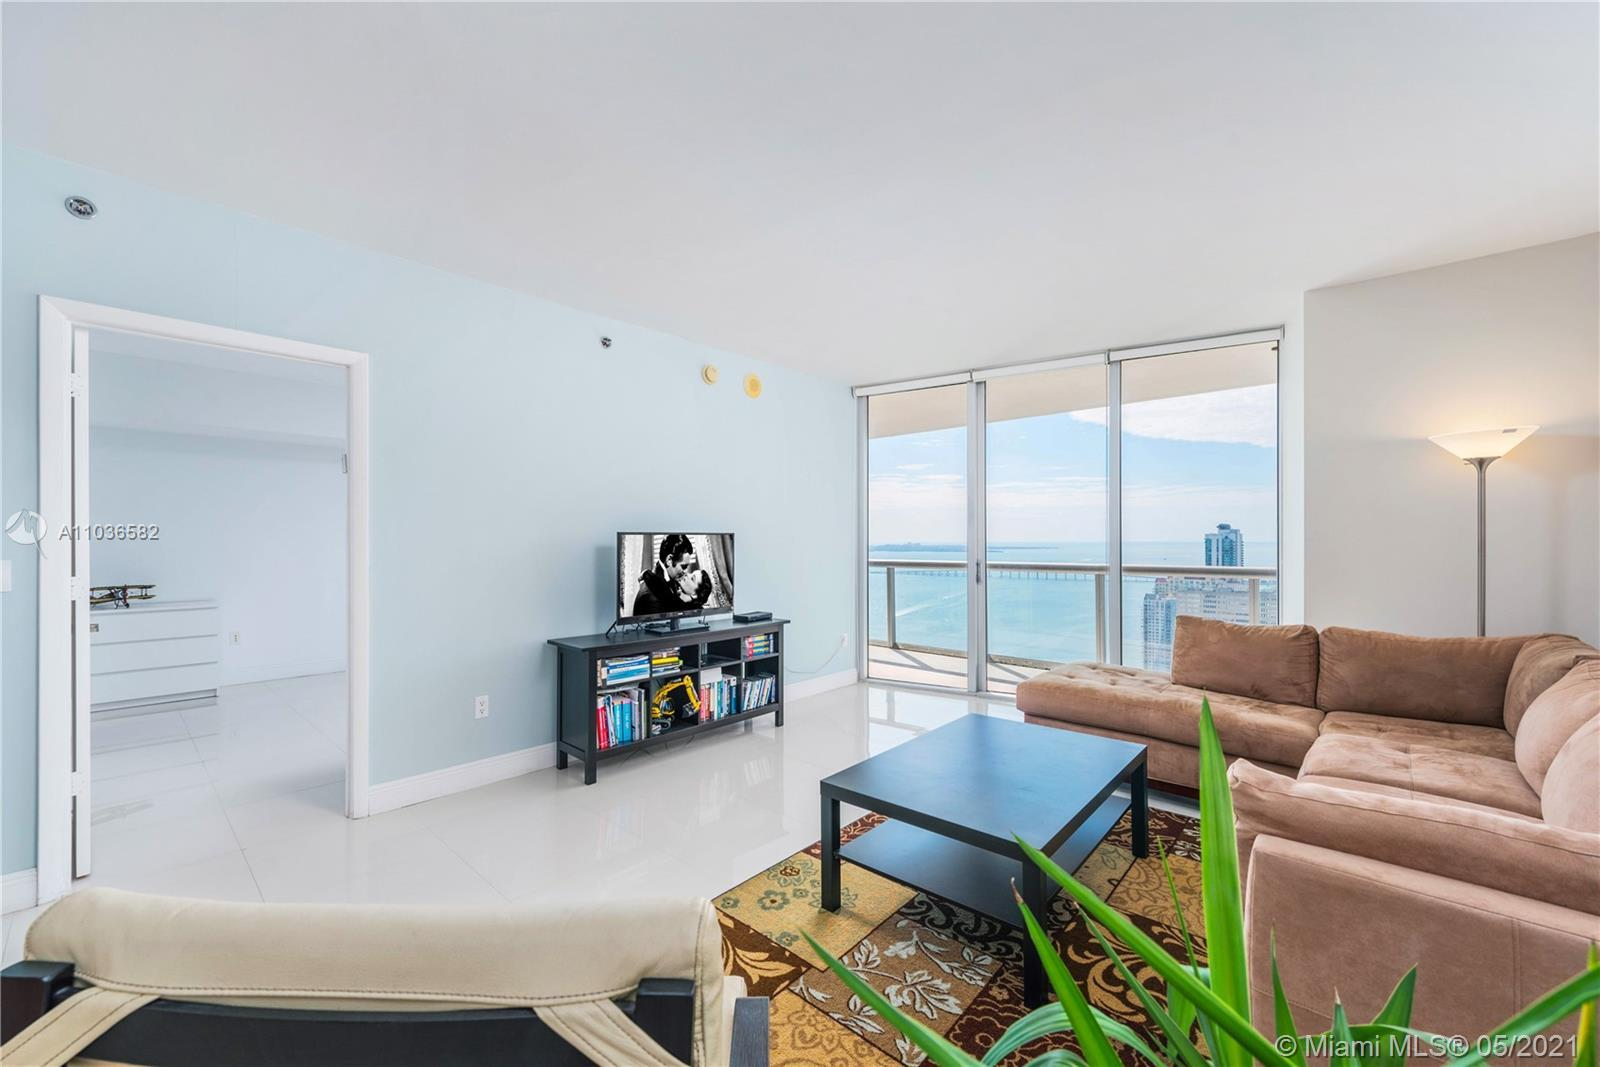 A spacious & bright 1 Bed, 1 Bath condo w/ over 1,000 interior square feet; white porcelain tiled fl